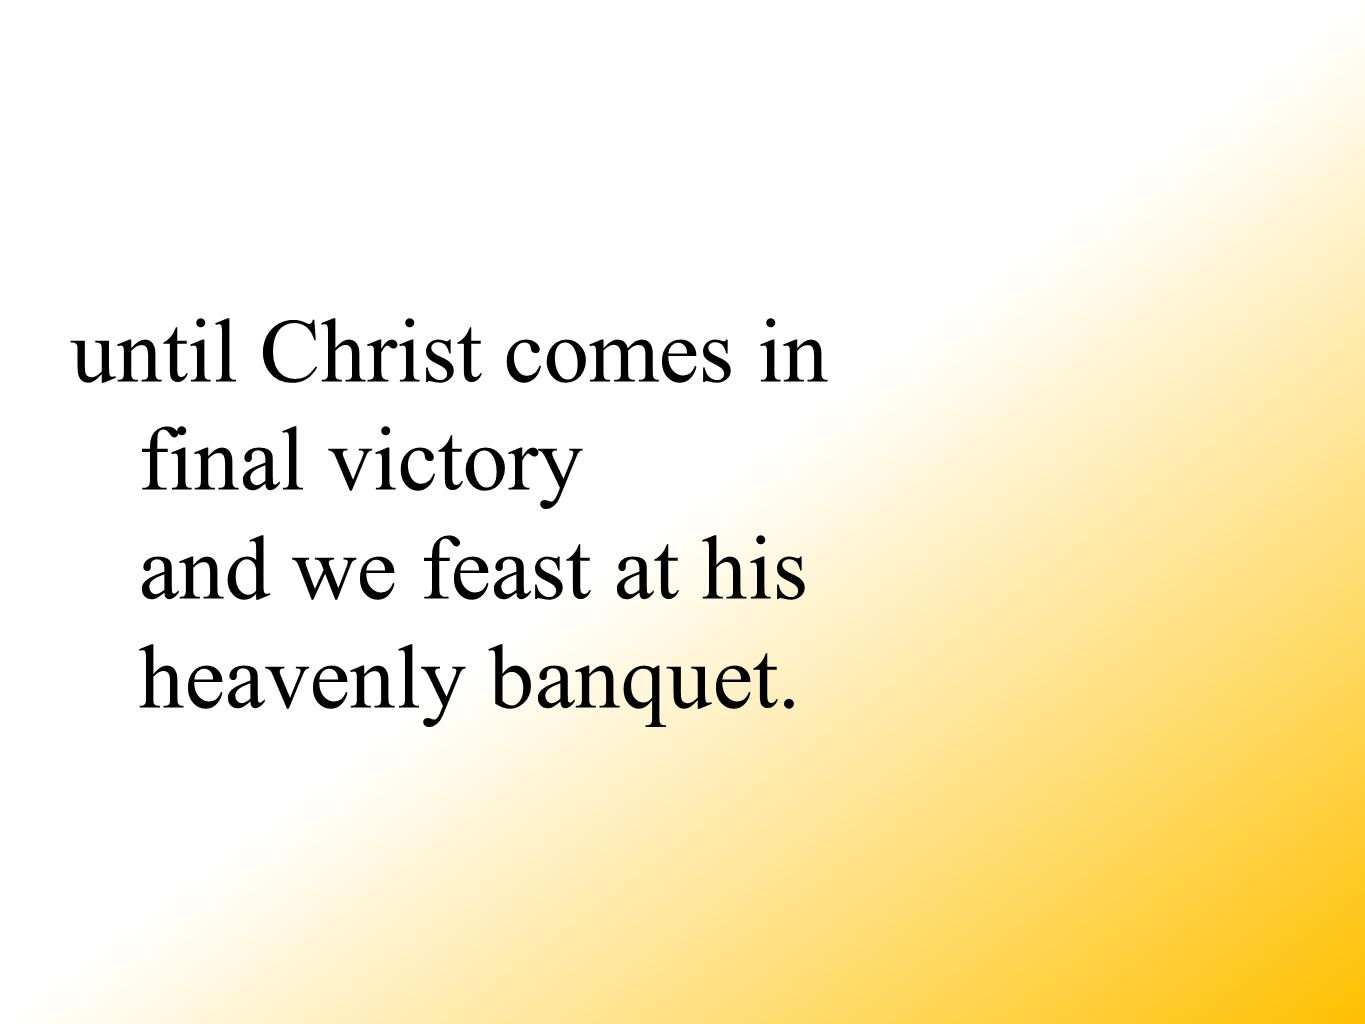 until Christ comes in final victory and we feast at his heavenly banquet.